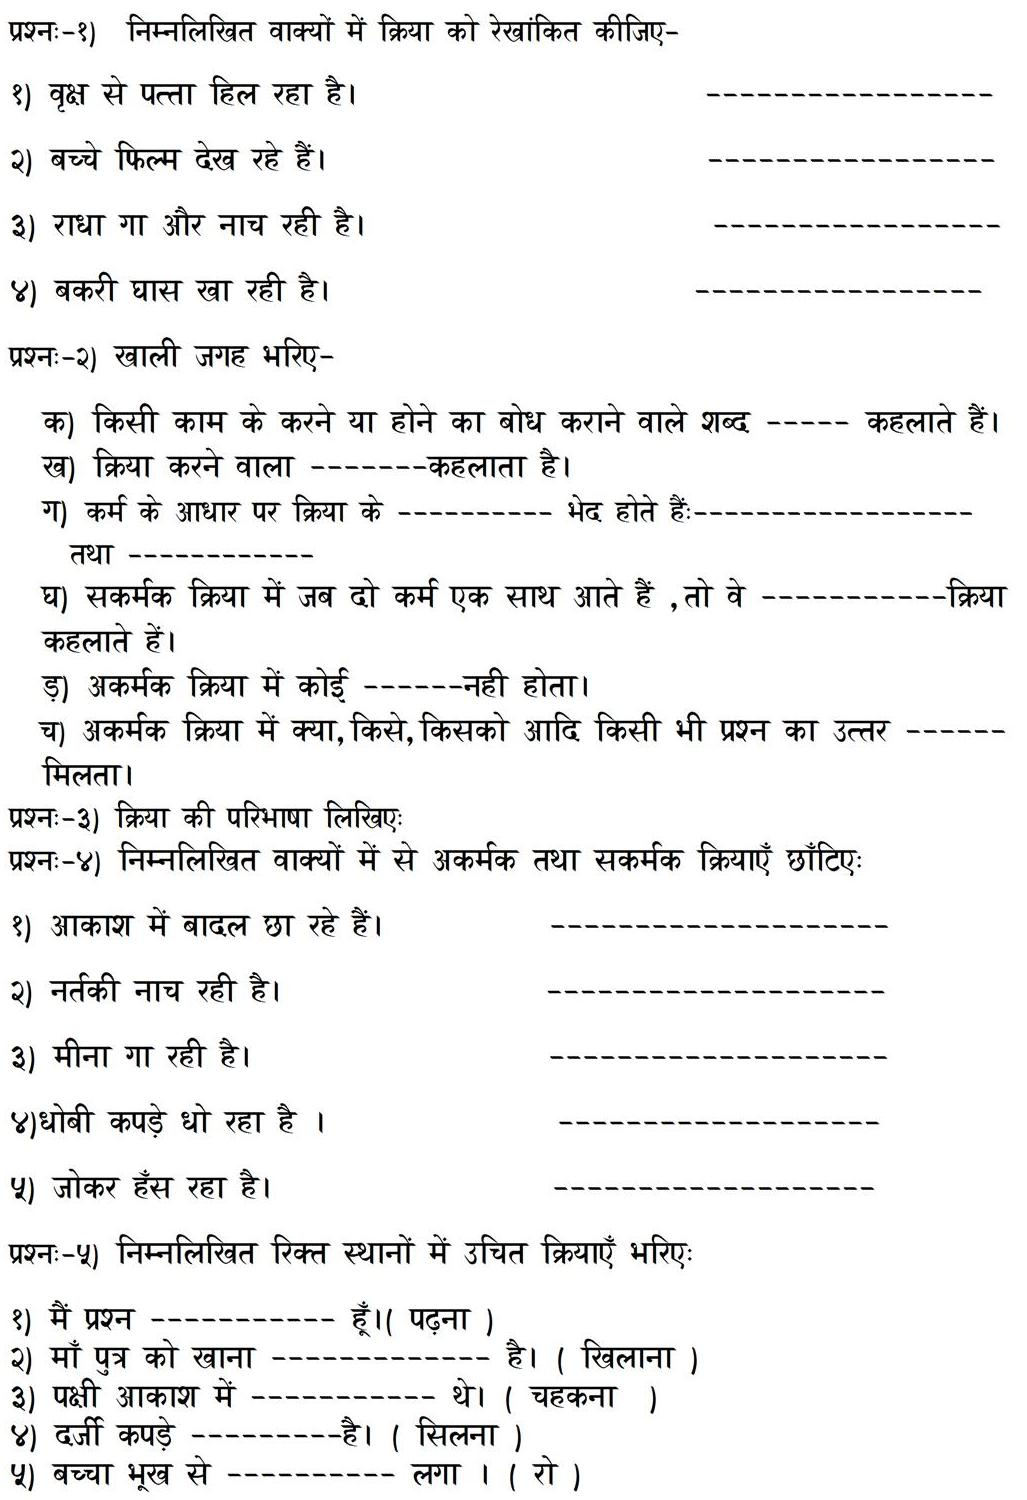 Worksheet Of Kriya